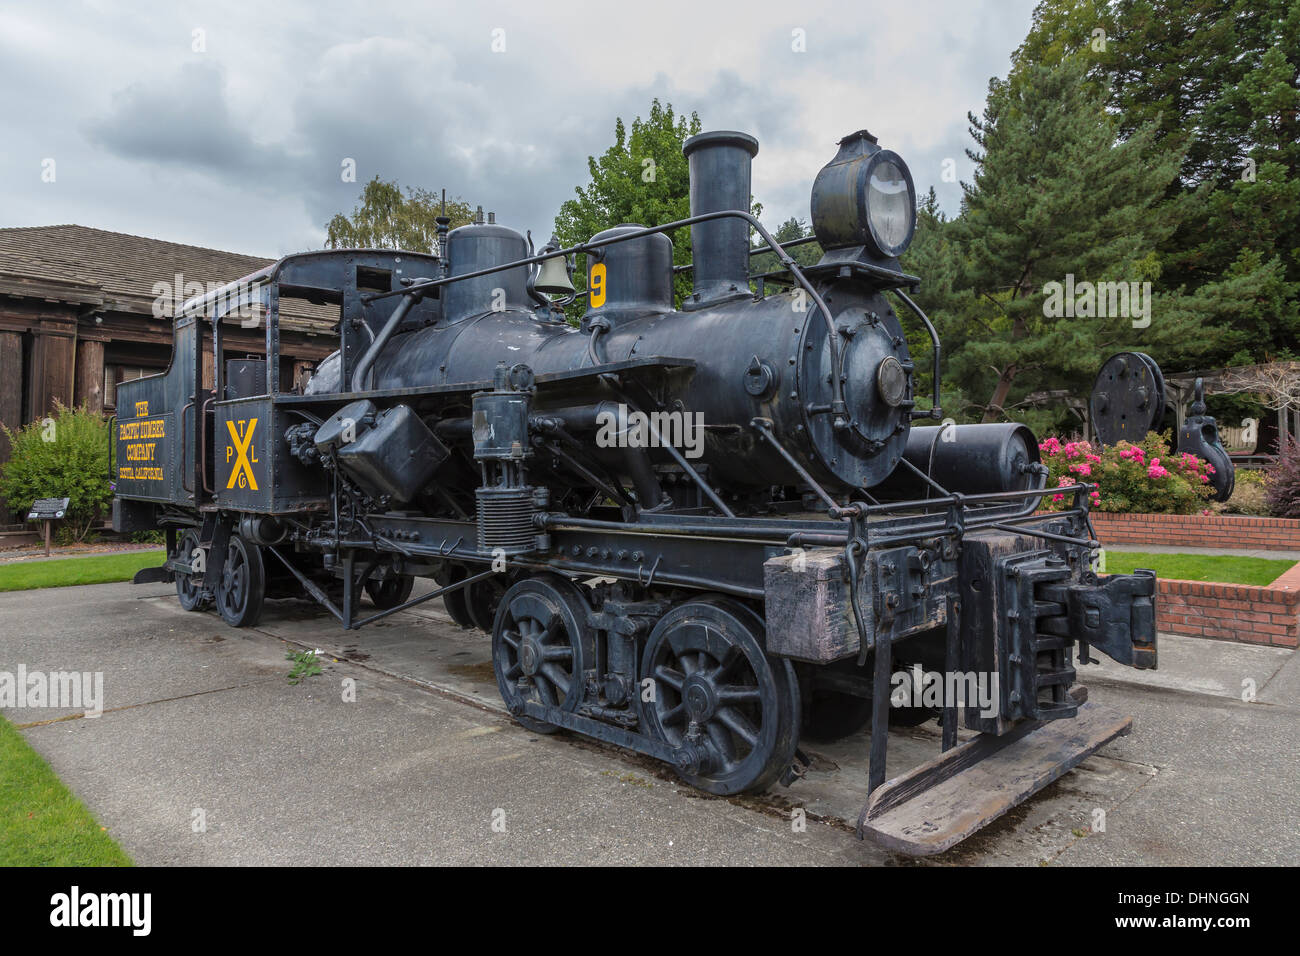 Old geared steam locomotive used for hauling logs, at Scotia Museum, in Scotia, a redwood logging company town, - Stock Image